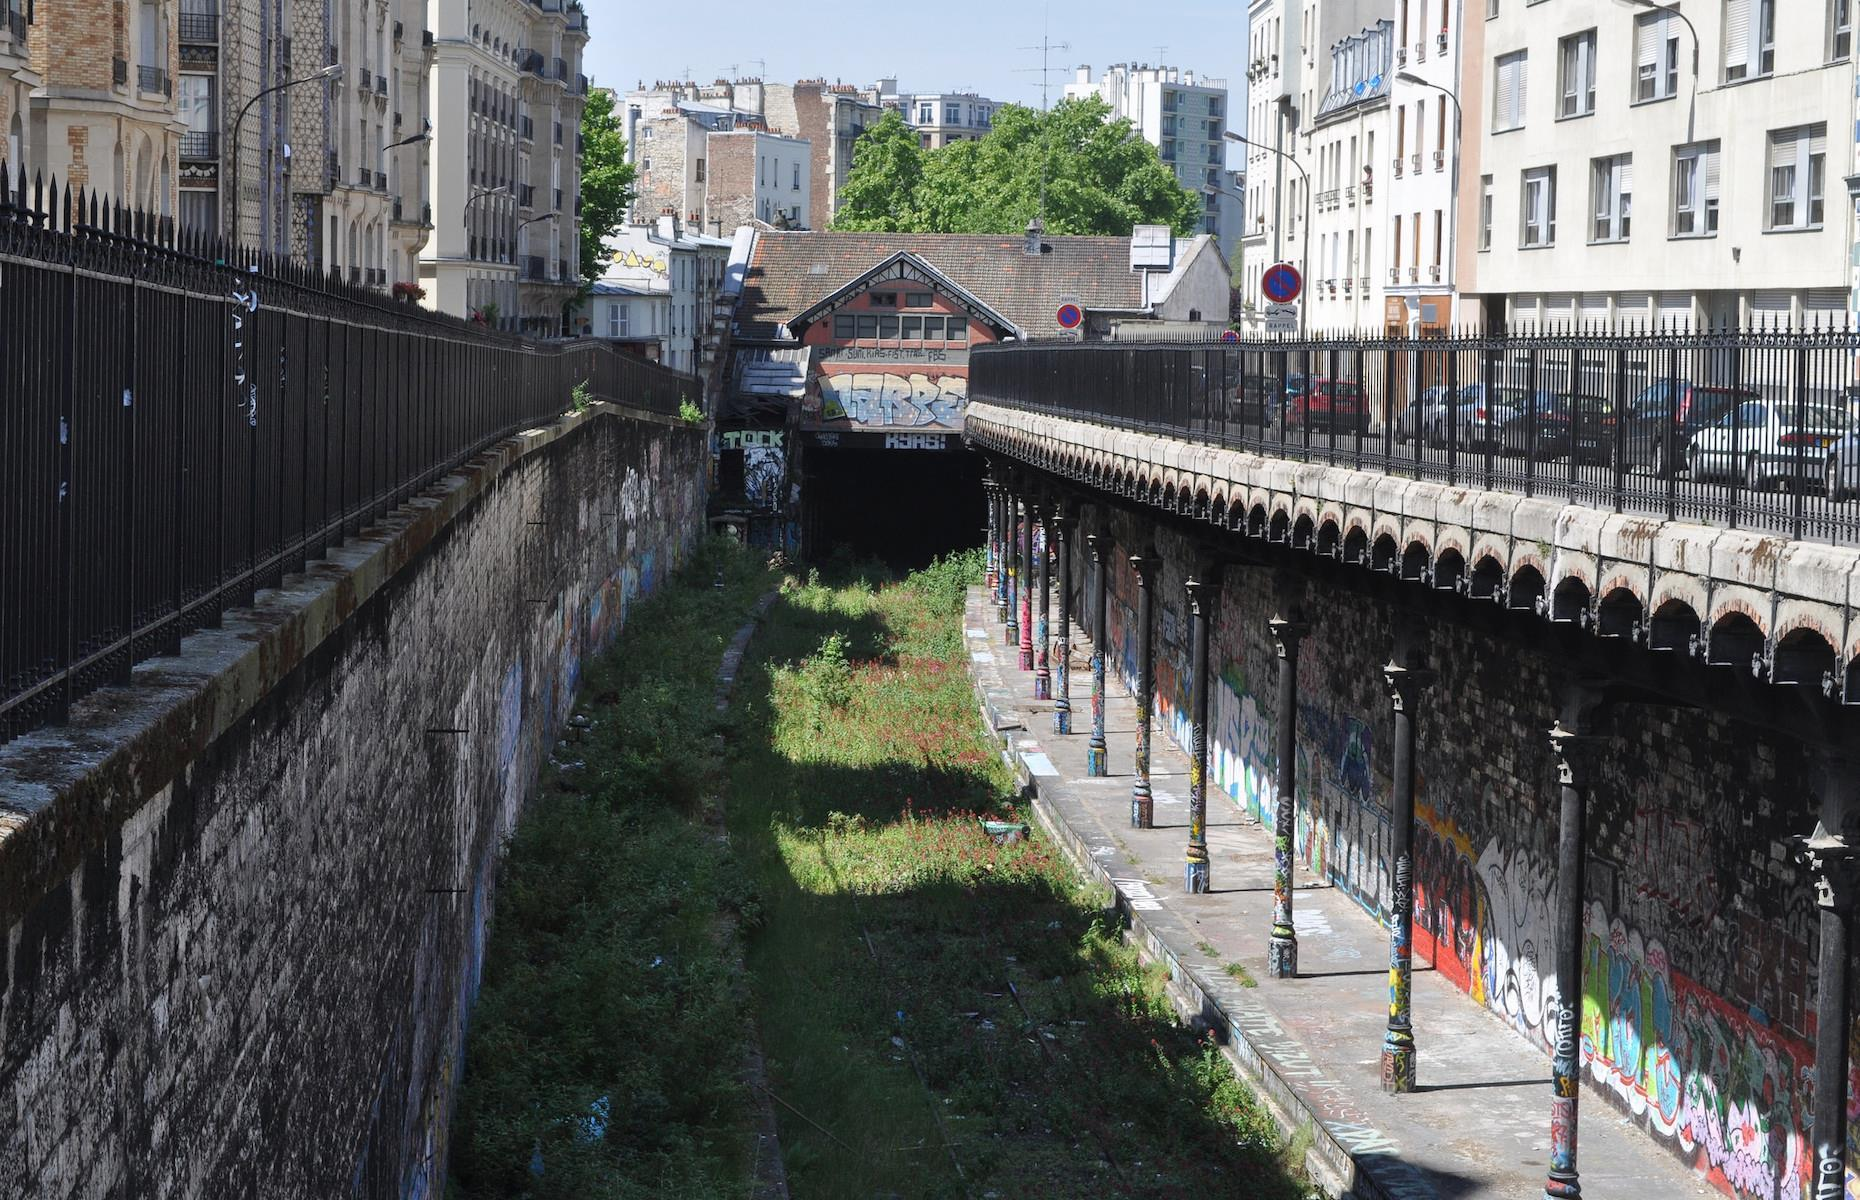 Slide 21 of 33: The once bustling railway line, which also served steam freight trains, originally had 29 stations, but today there are only 17. It was forced into decline by the advent of the underground Paris Métro and the growing popularity of motor vehicles.